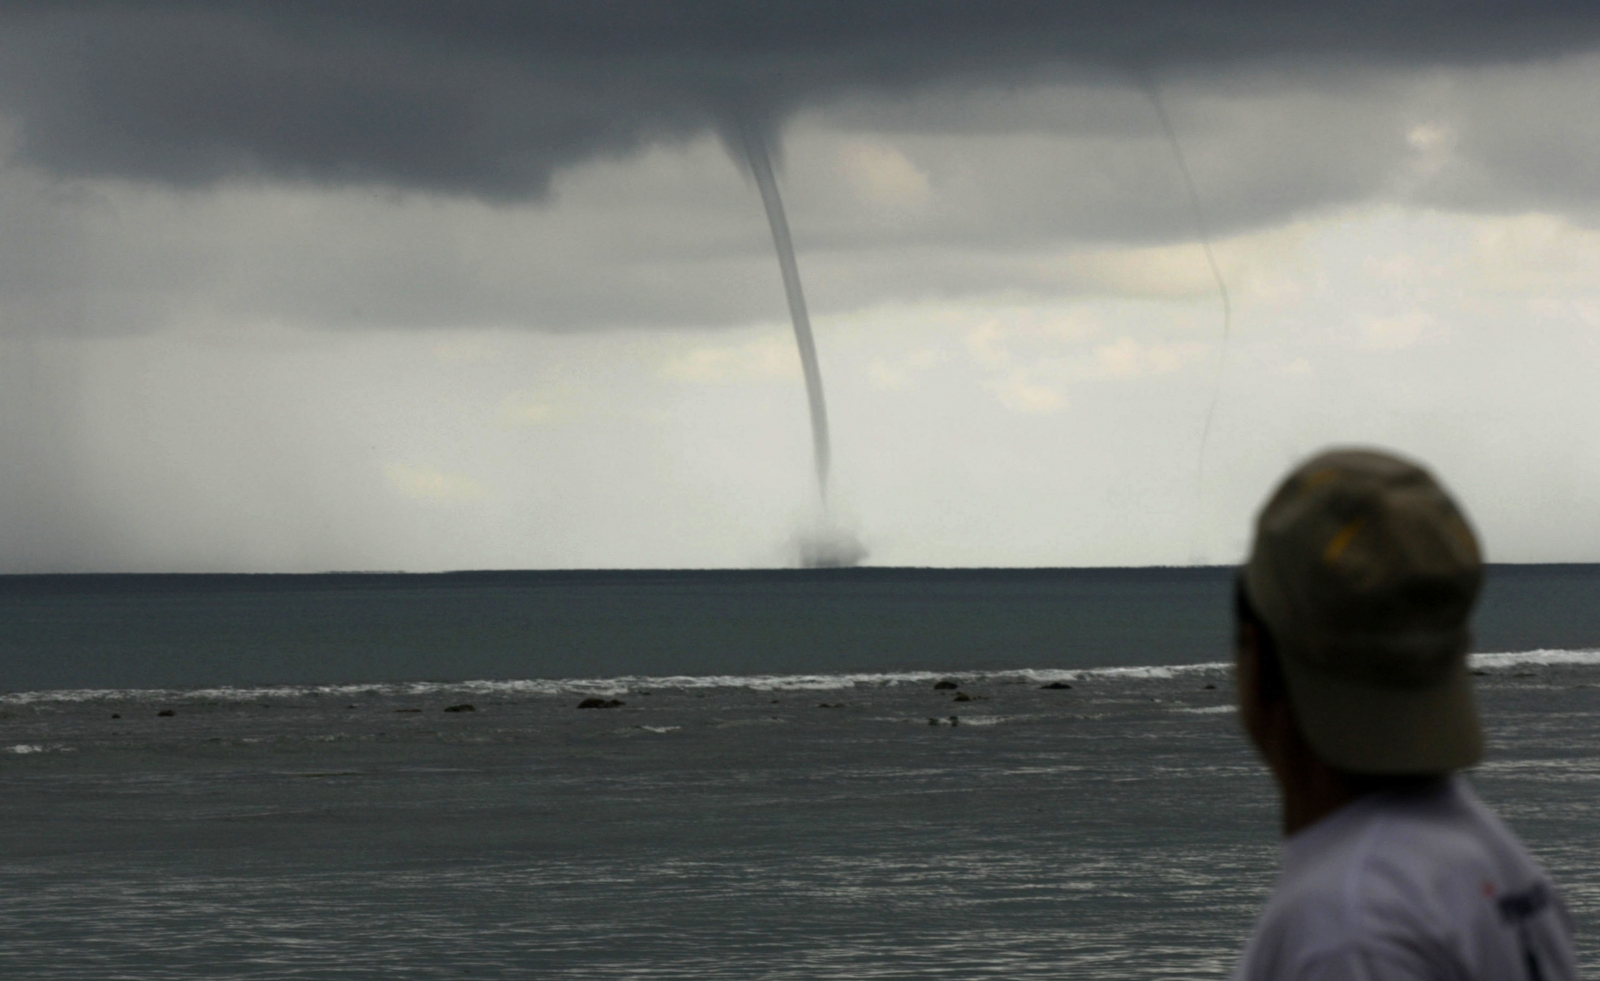 waterspout tornado weather